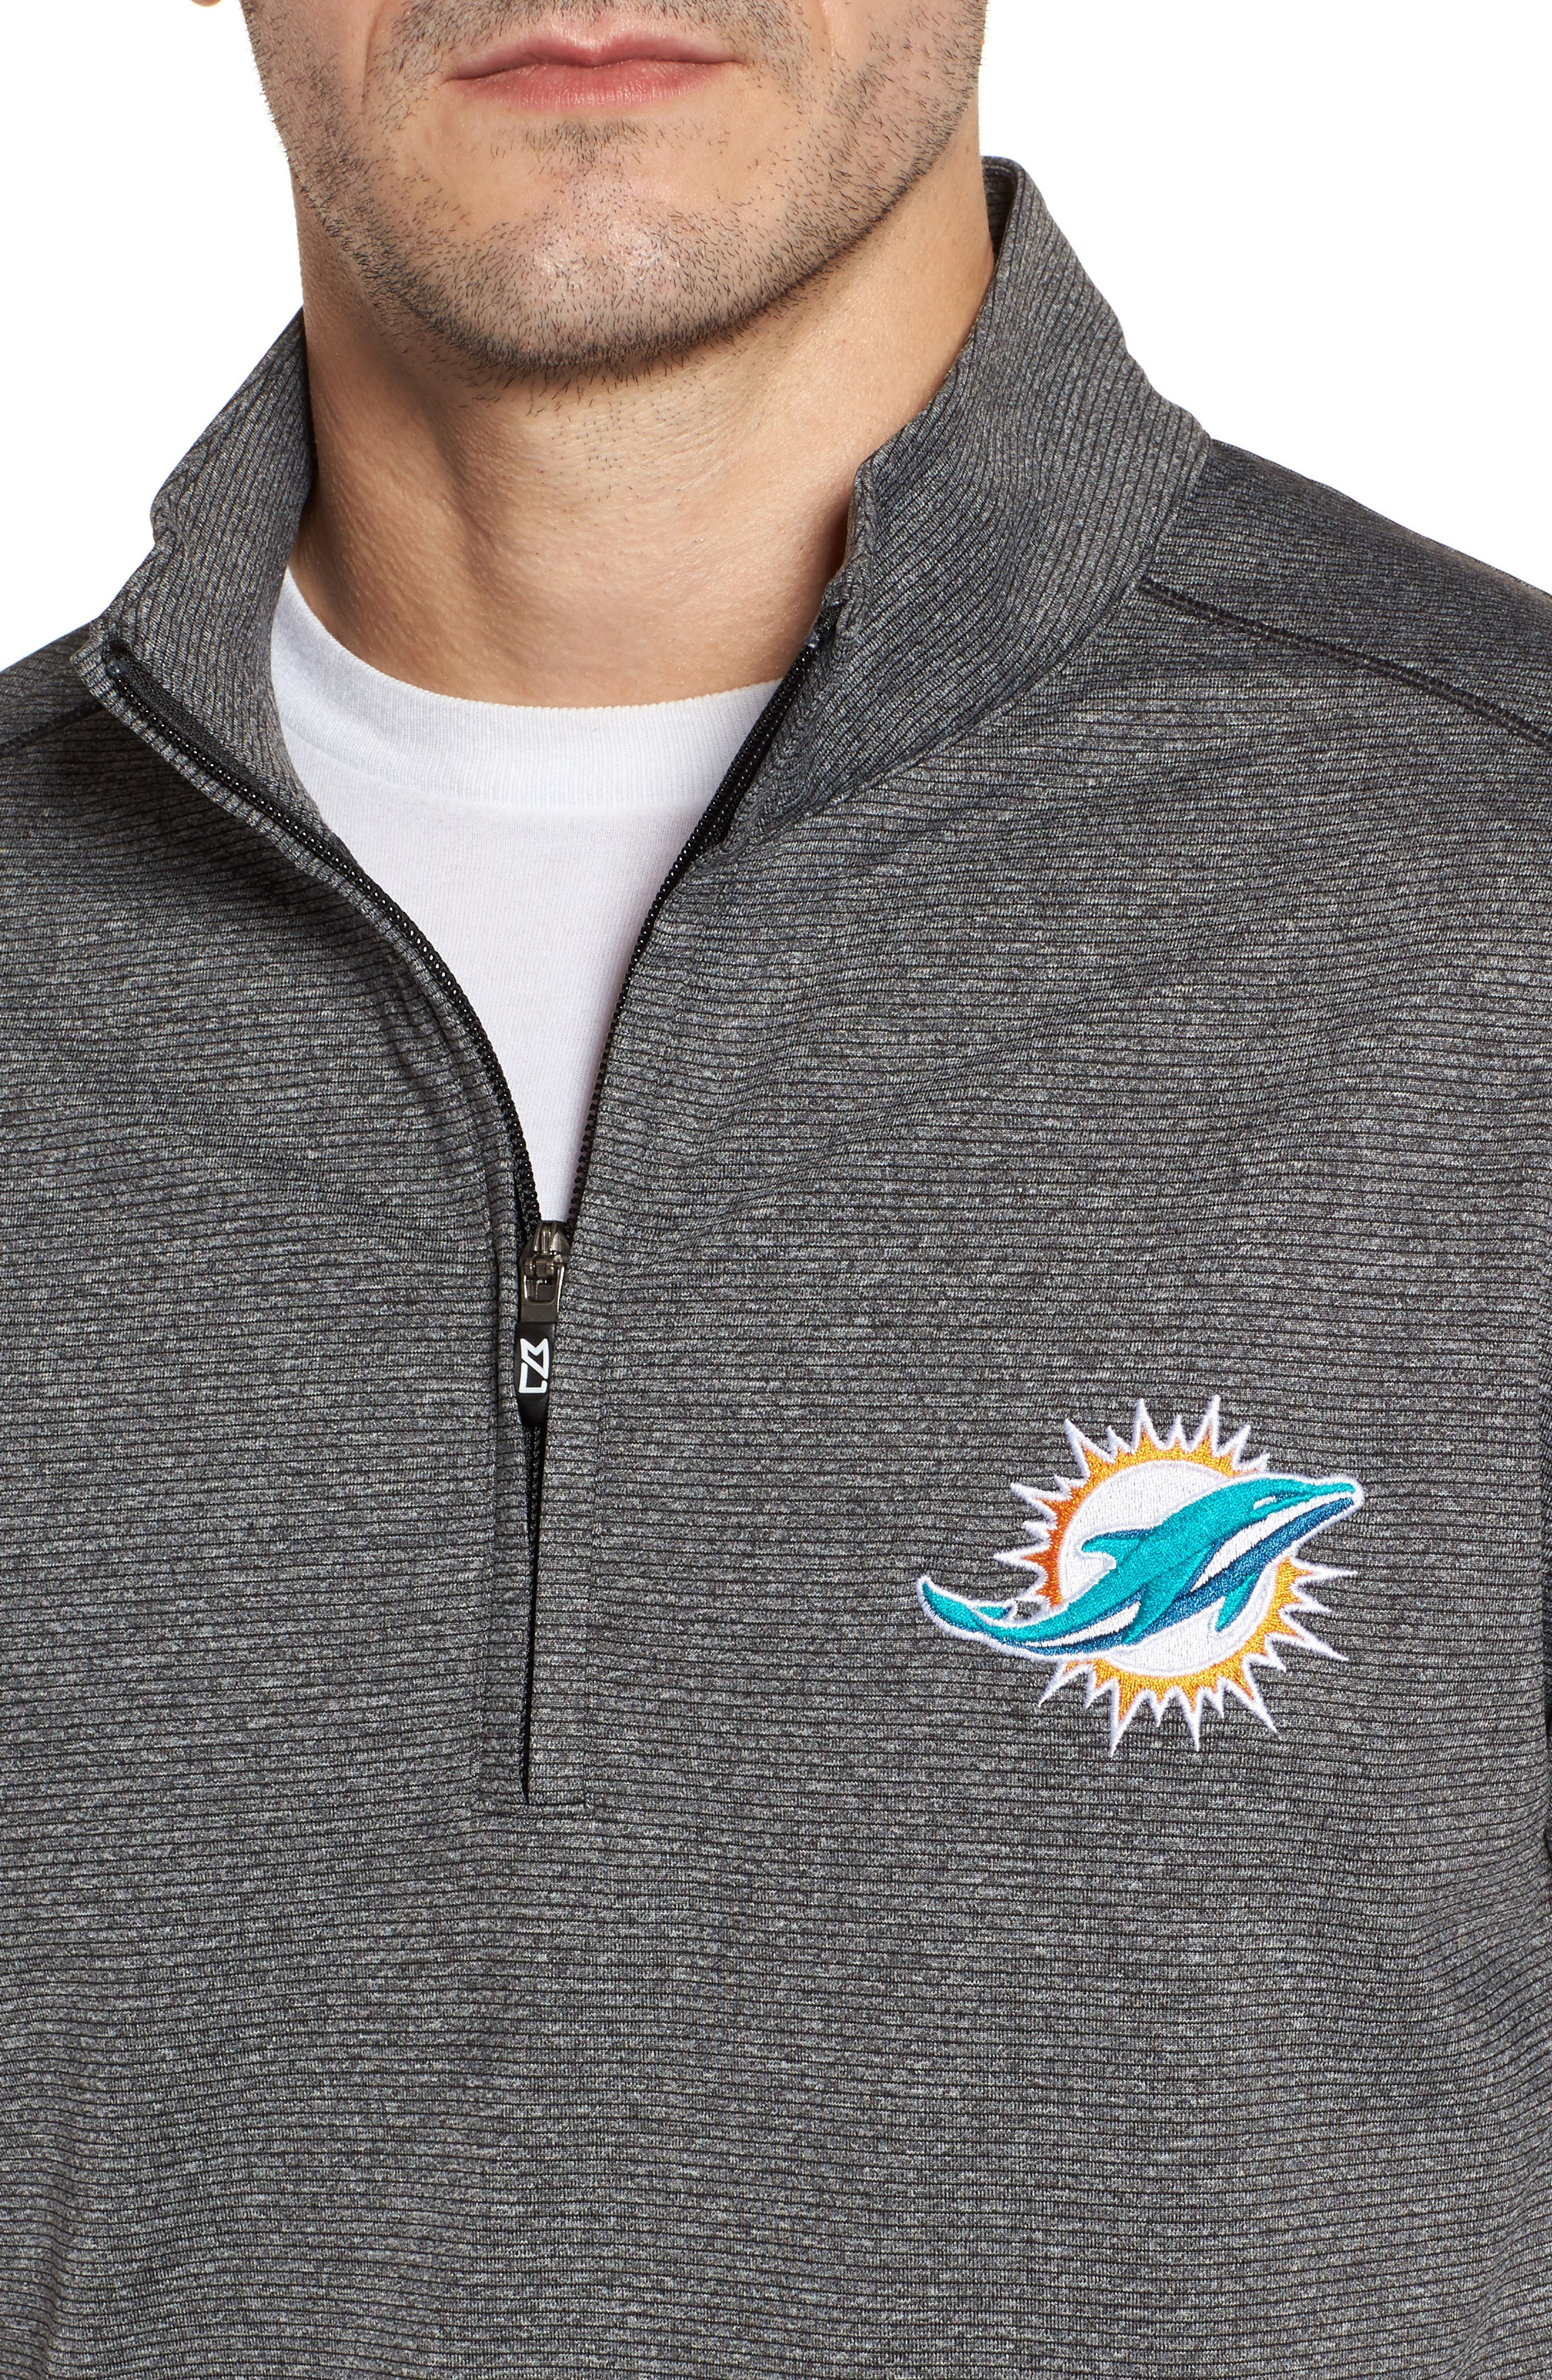 Shoreline - Miami Dolphins Half Zip Pullover,                             Alternate thumbnail 4, color,                             Charcoal Heather